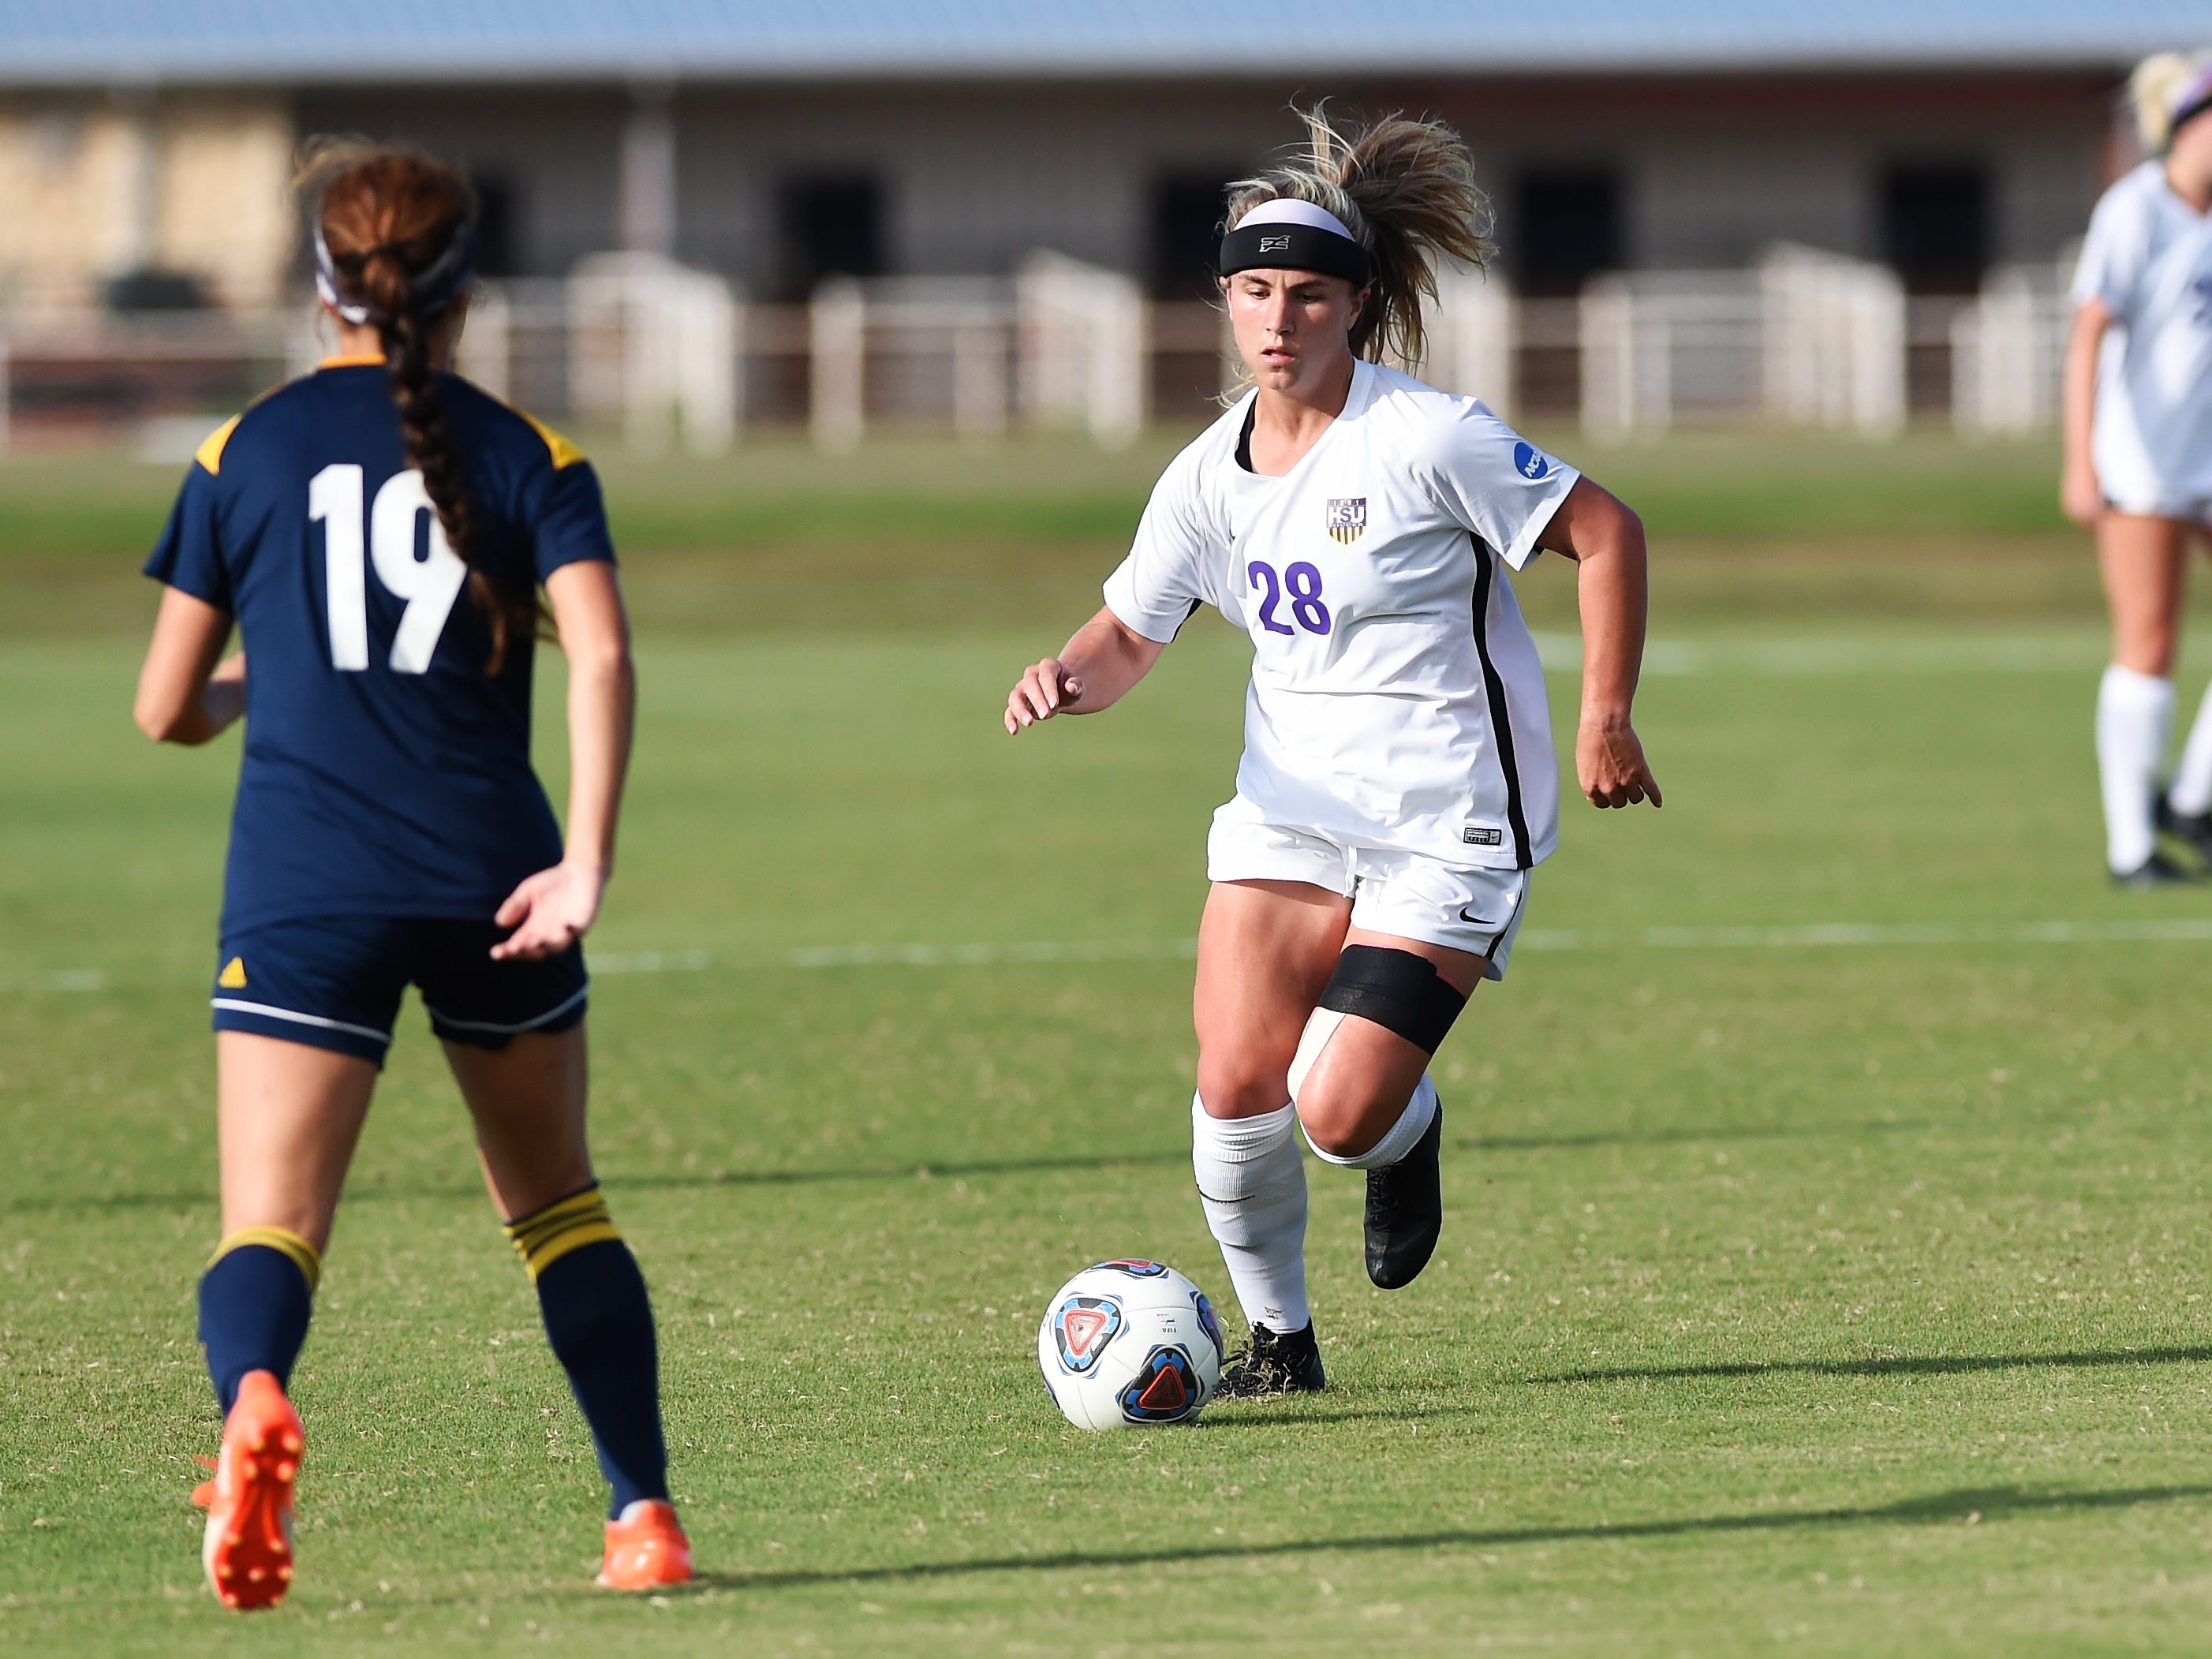 Hardin-Simmons midfielder Kenne Kessler (28) carries the ball downfield against Howard Payne at the HSU Soccer Complex on Thursday, Oct. 11, 2018. The Cowgirls won 4-1.